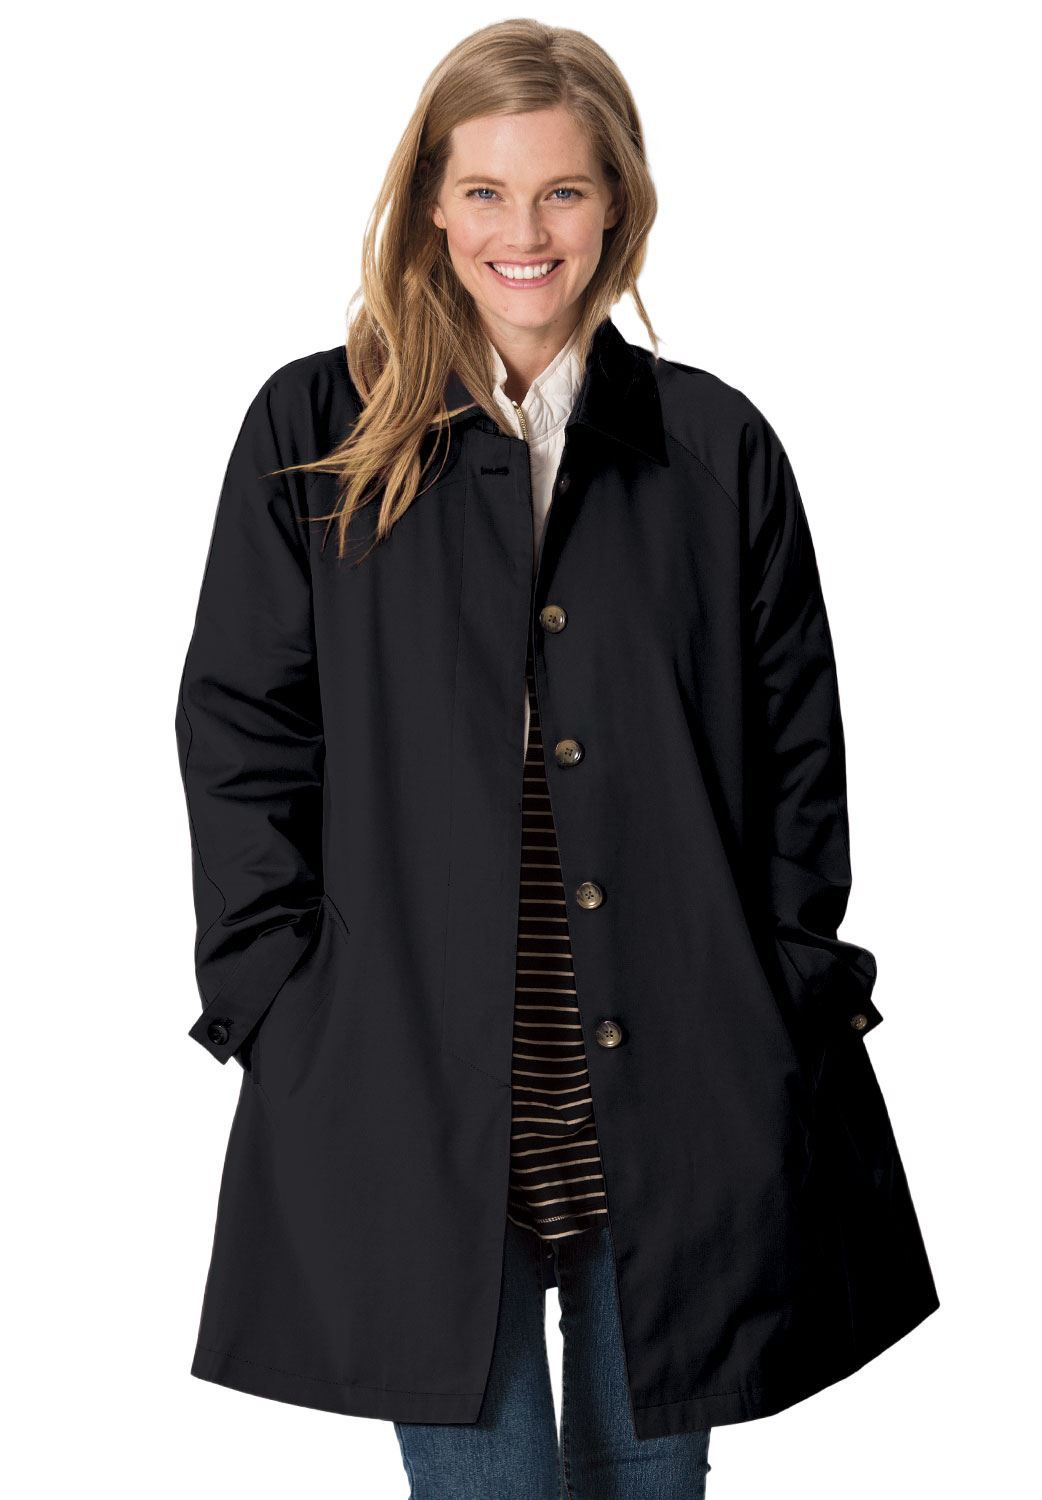 514f3b71f28 Water-resistant A-line raincoat - Women s Plus Size Clothing